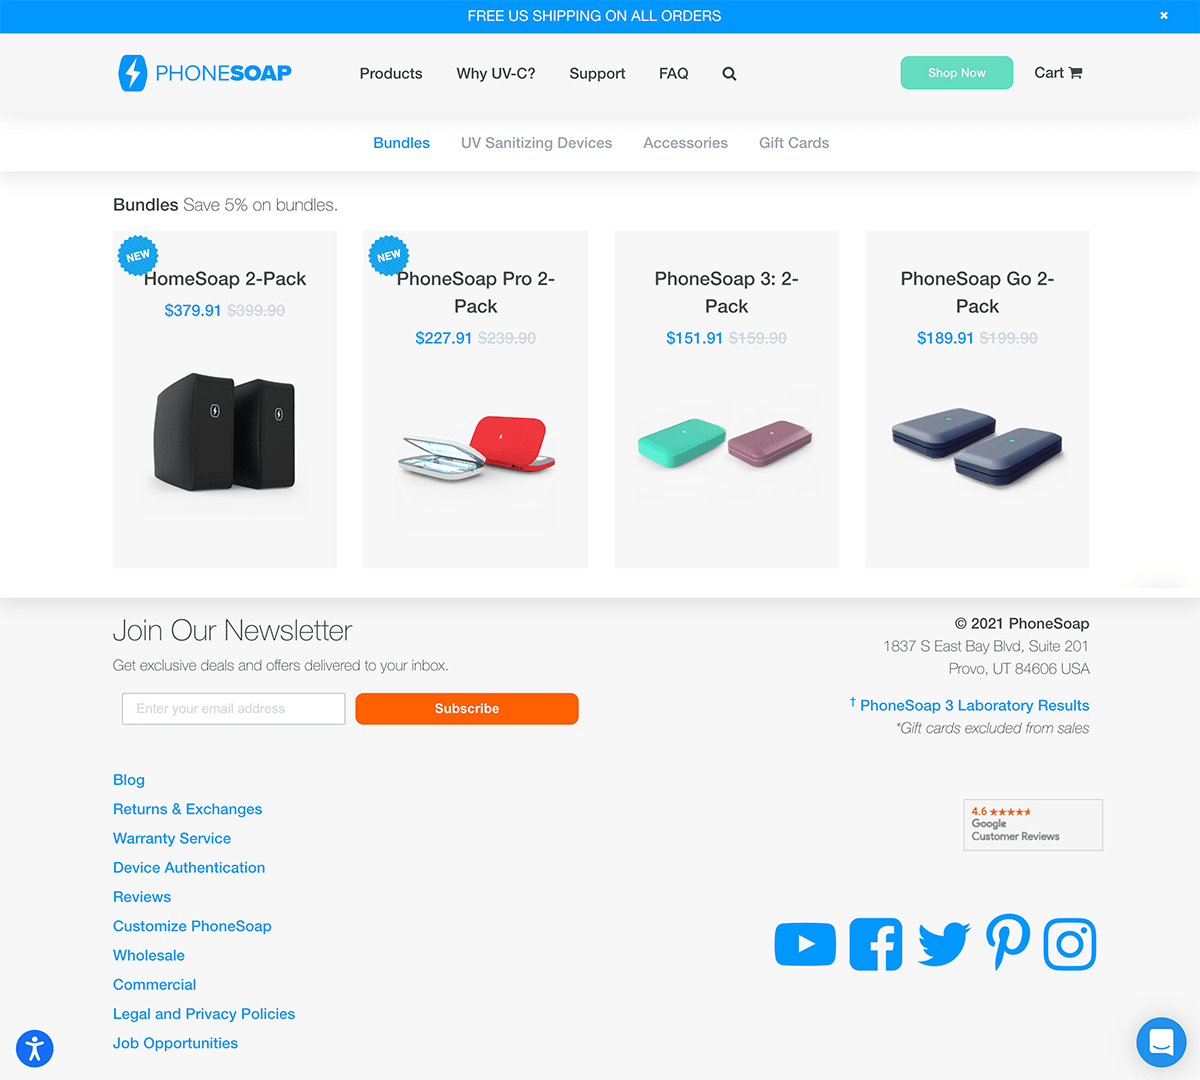 PhoneSoap Ecommerce Category Page